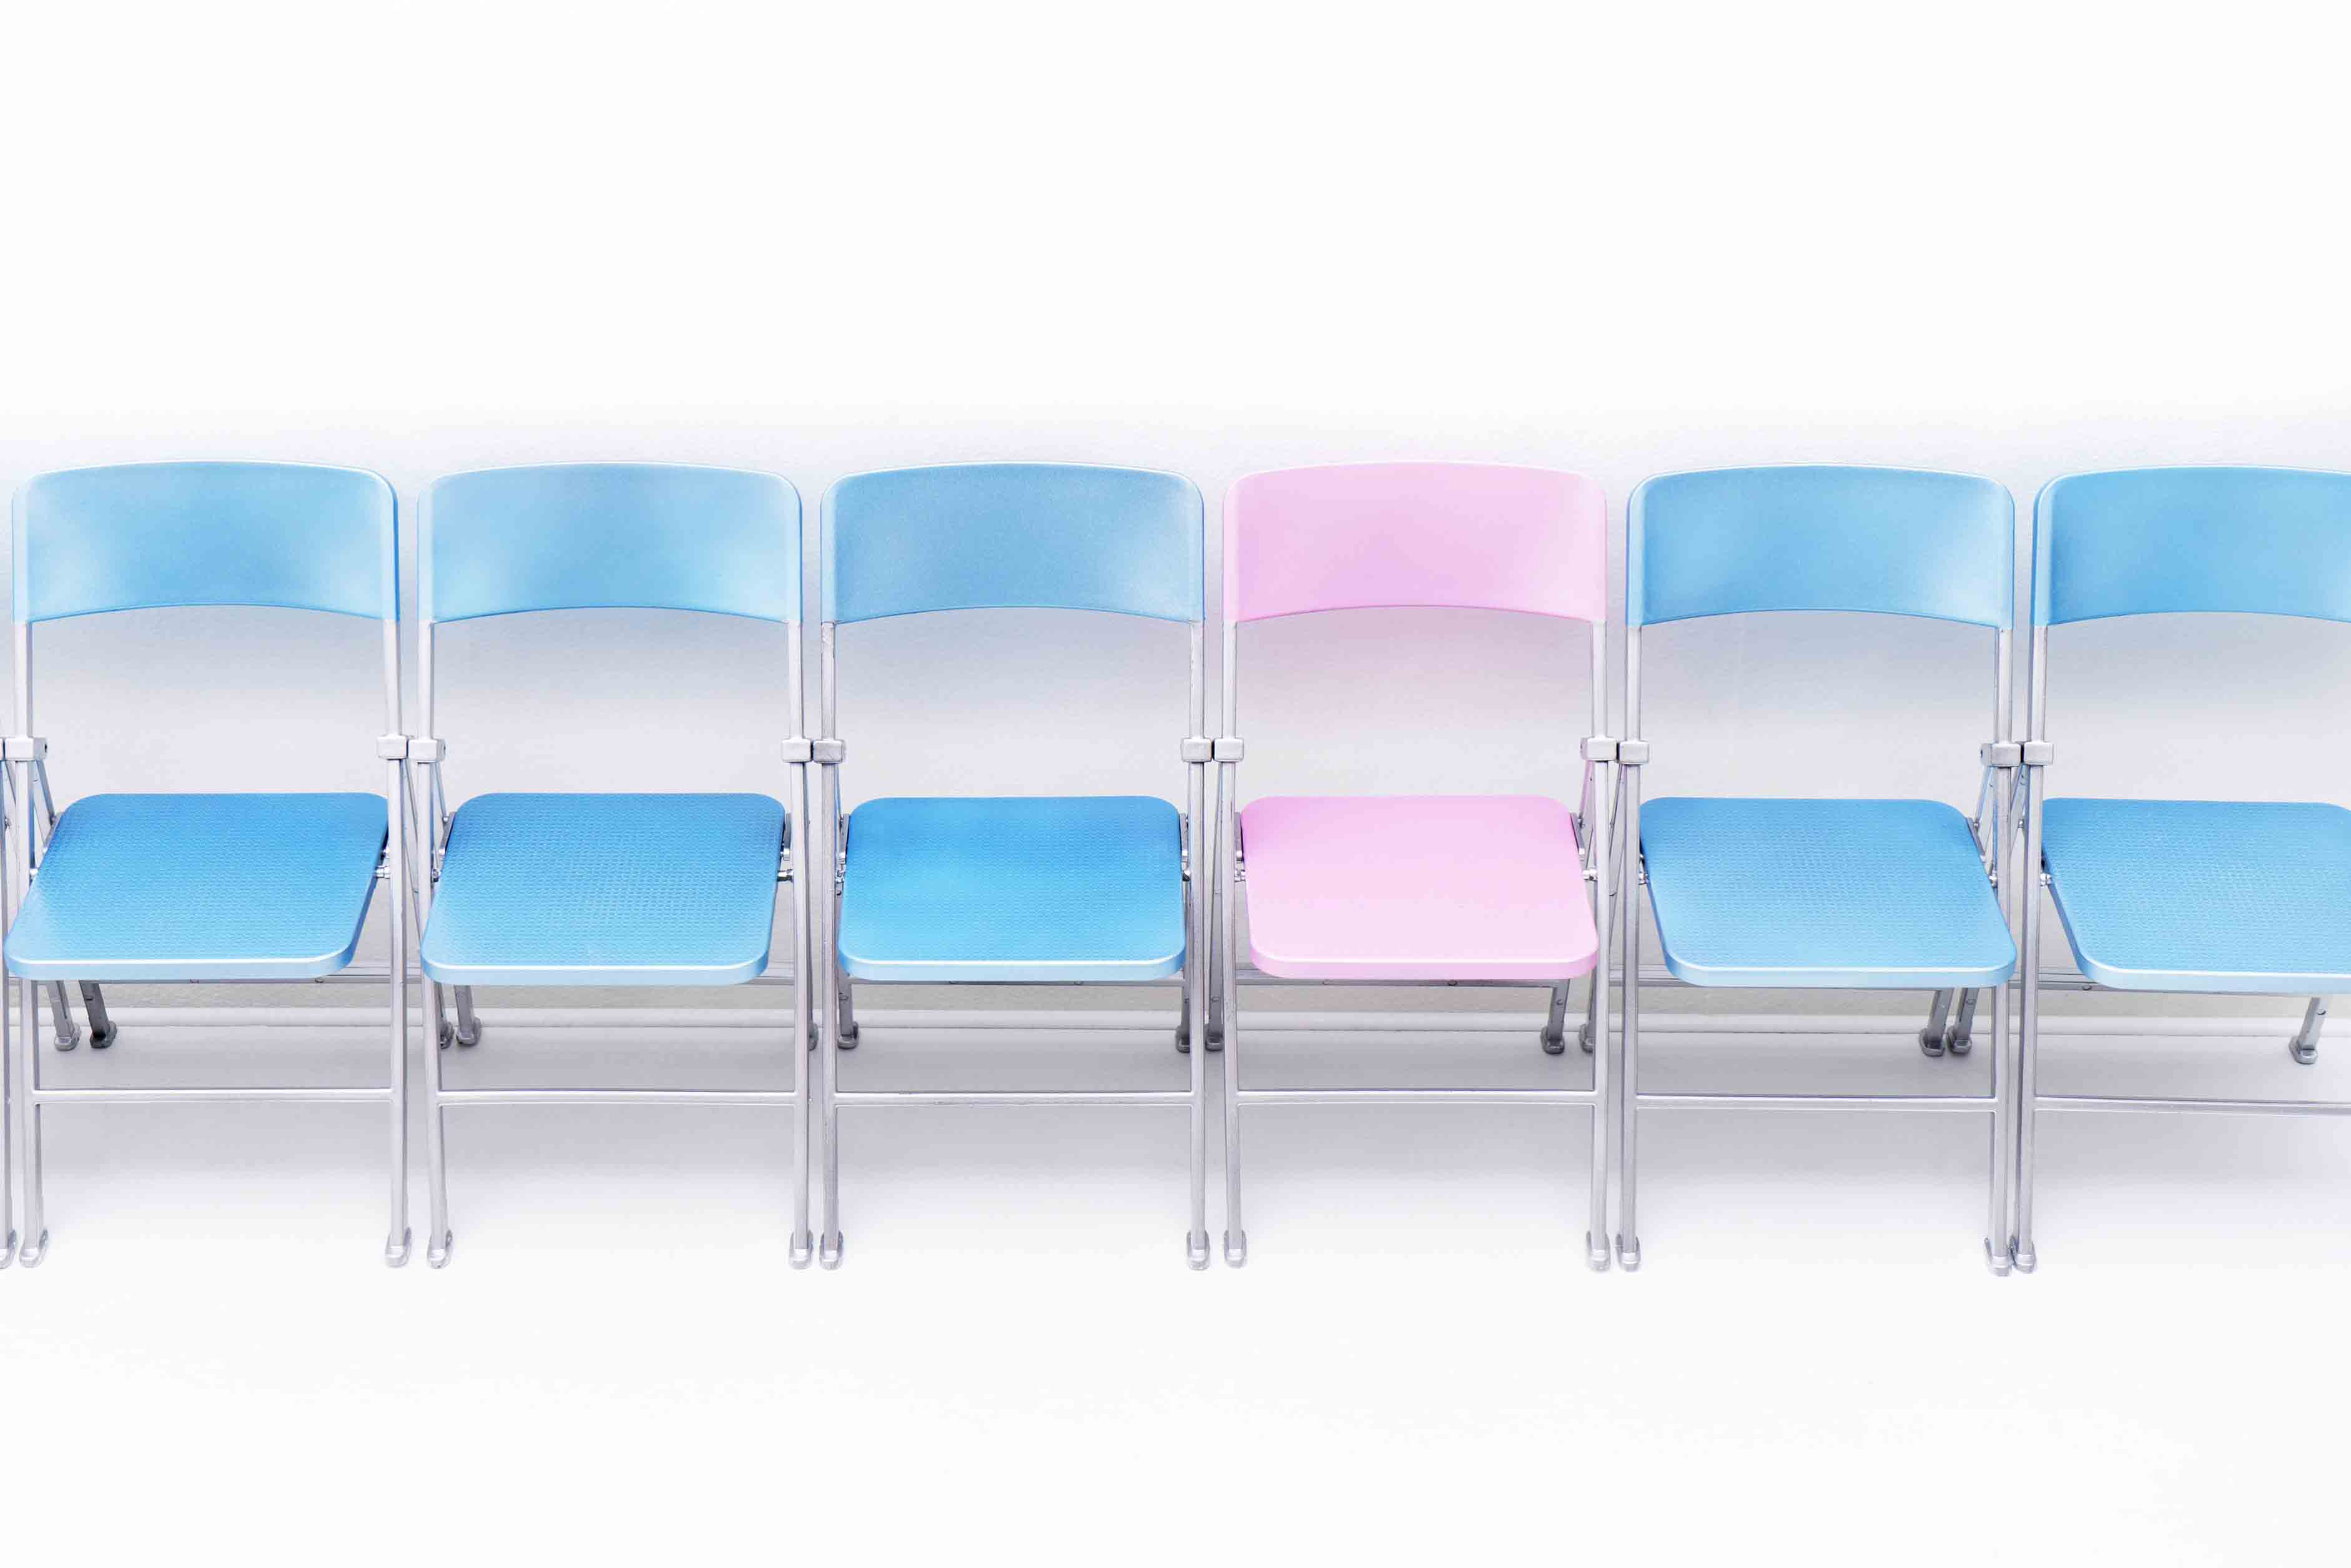 679-08718348 © Masterfile Royalty-Free Model Release: No Property Release: No One pink chair in a row of blue chairs.